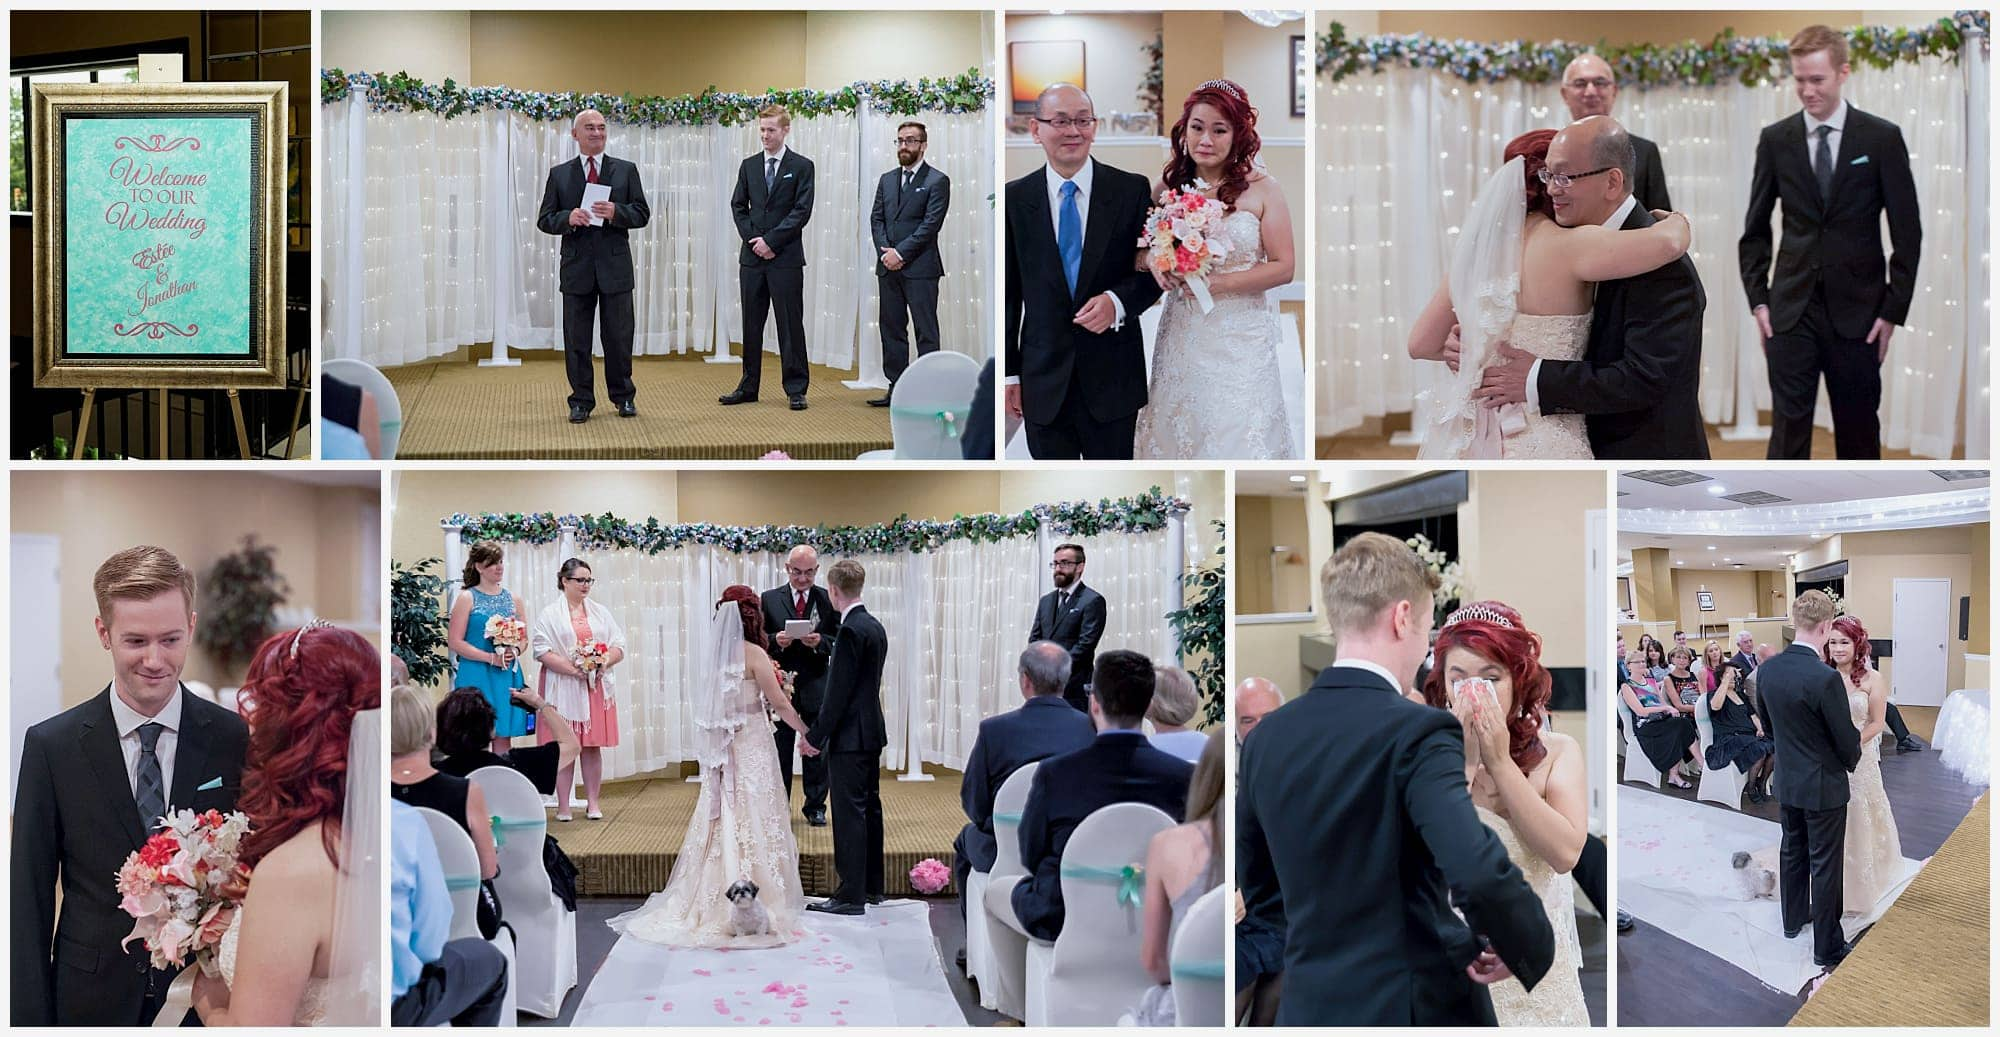 The Wedding ceremony of a bride and groom at the Atlantica Hotel in Halifax.